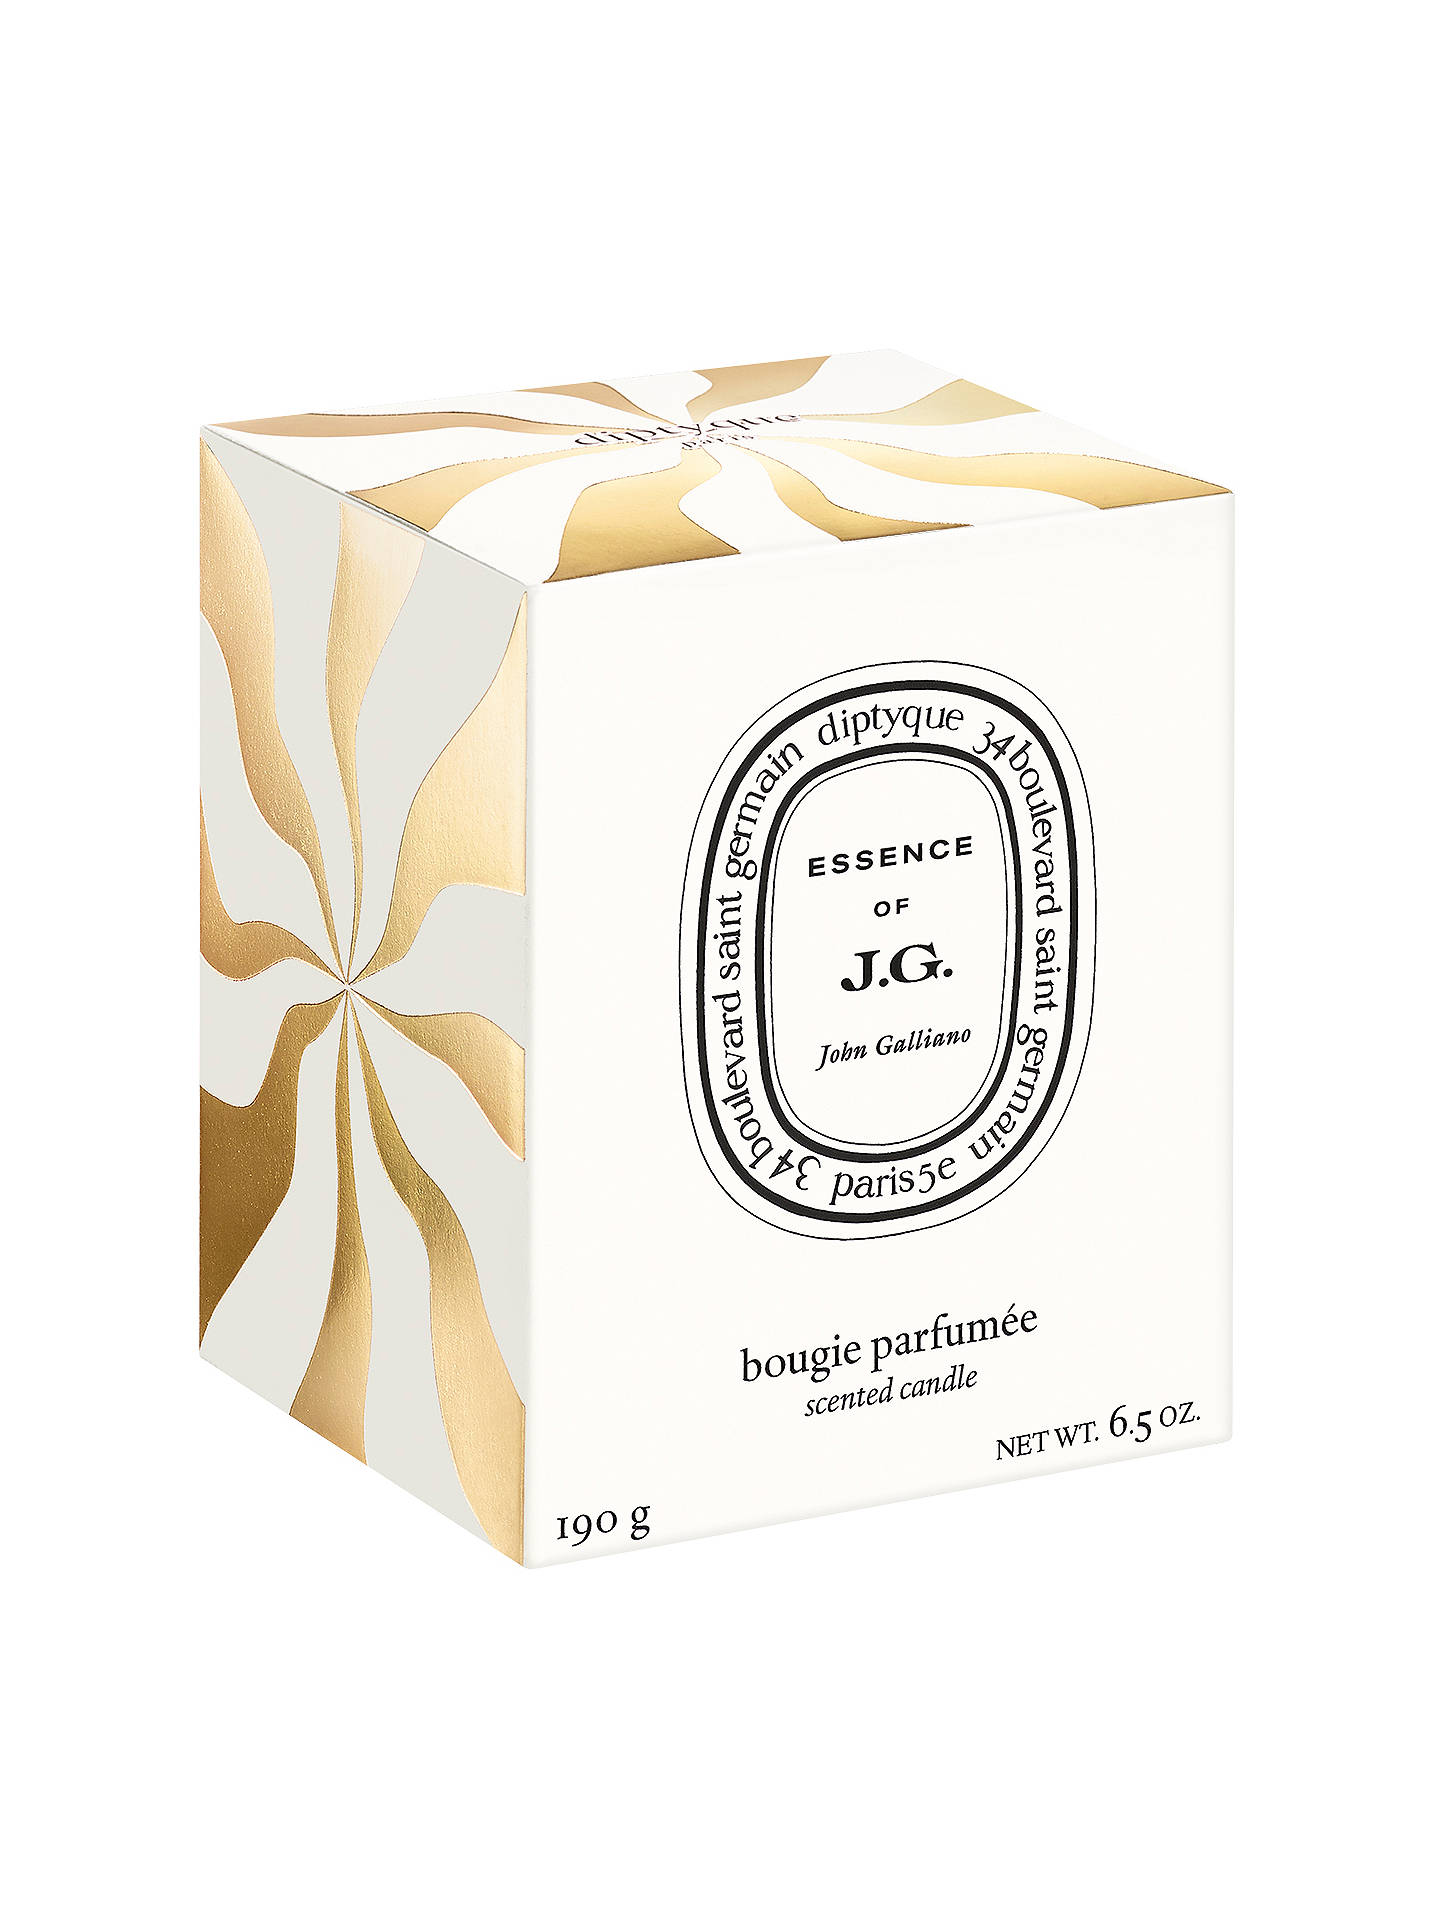 Diptyque John Galliano Candle 190g in gold wrapping new in box